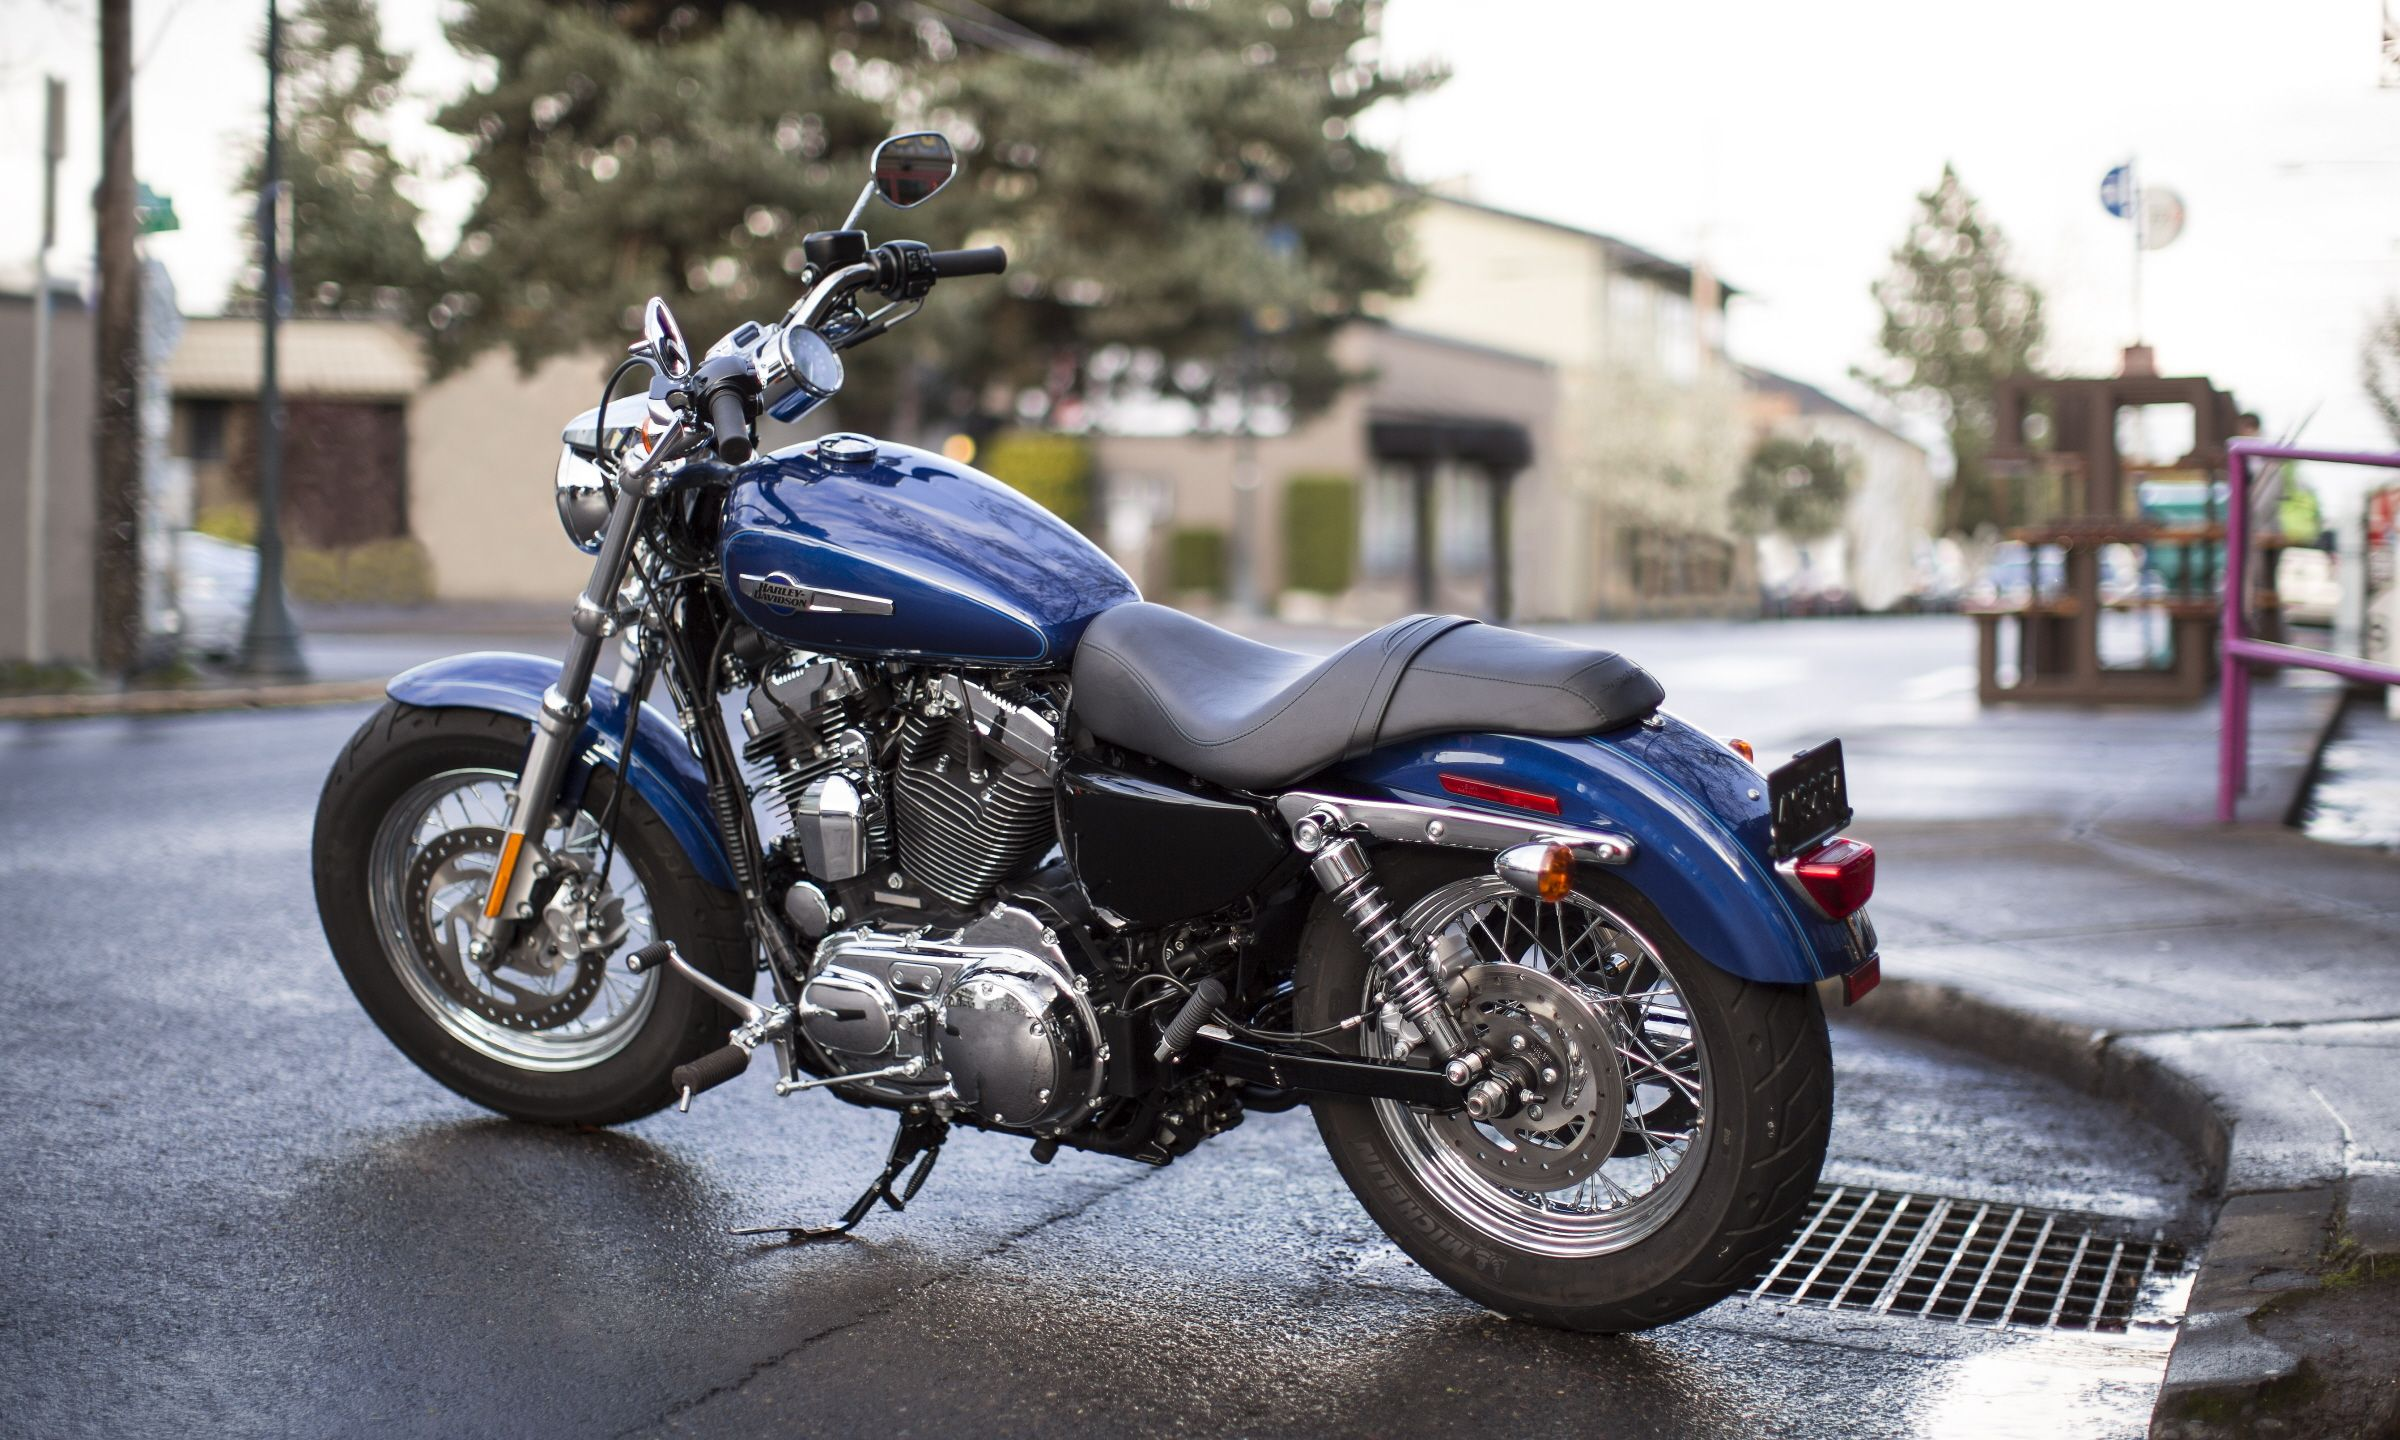 The ultimate wide-shouldered cruiser, featuring optional H-D1 ...